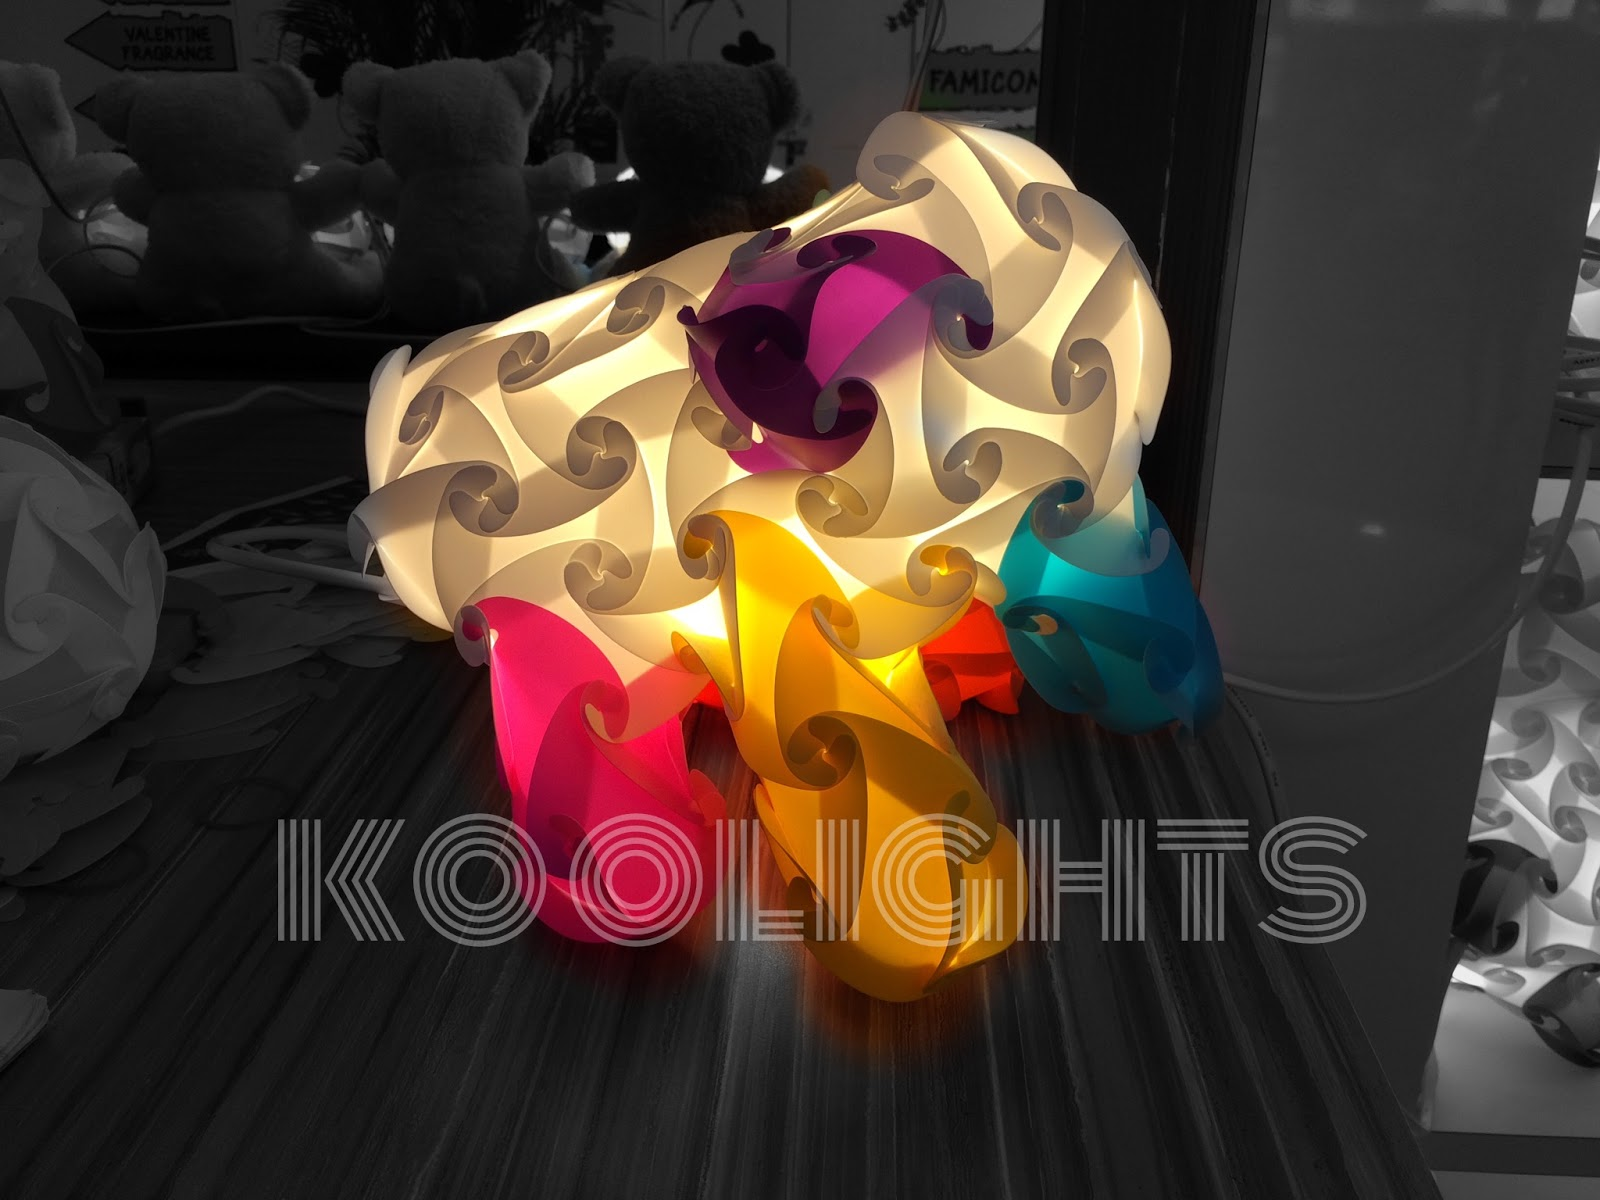 koolights, koolights korea, luvalamp,table lamp, iq lamp, iq light, jigsaw lamp, jigsaw light, puzzle lamp, puzzle light, handmade lights, lamps, night lamp, lampshades, night light, DIY, lights, christmas gifts, cool gifts, gifts, corporate, mrlampshop, rainbow colors, franchise, distributor, eco friendly, plastic bottle puncher, recycle, upcycle, reuse plastic, led, handicraft, hand made, creative, rainbow, red, pink, orange, yellow, green, purple, white, black, pp, plastic, change shapes, assemble, DIY, do it yourself, elephant, cute, wildlife